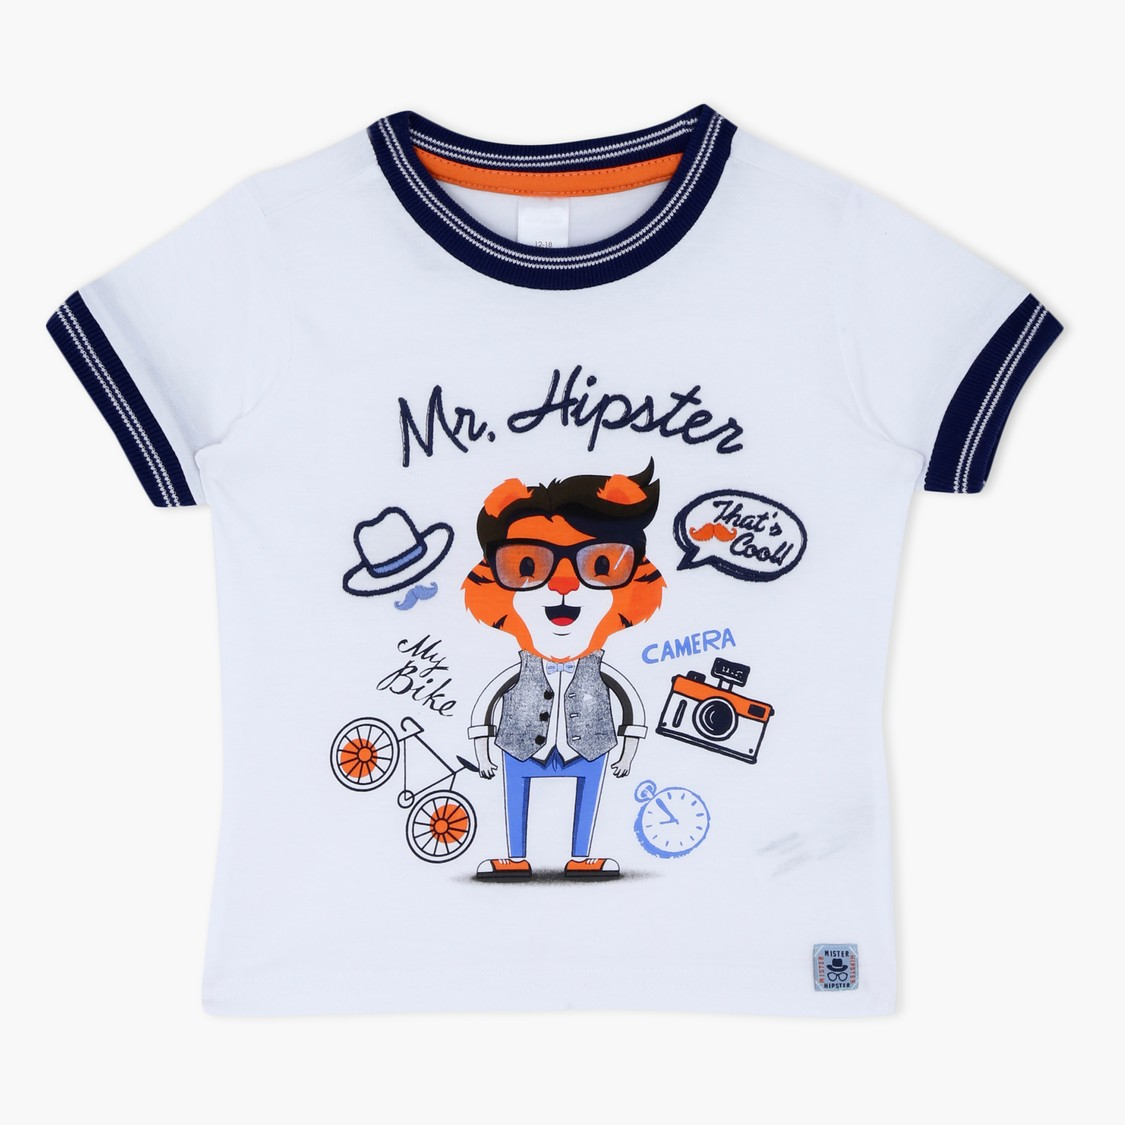 Graphic Print Short Sleeves Round Neck T-Shirt with Stitch Detailing